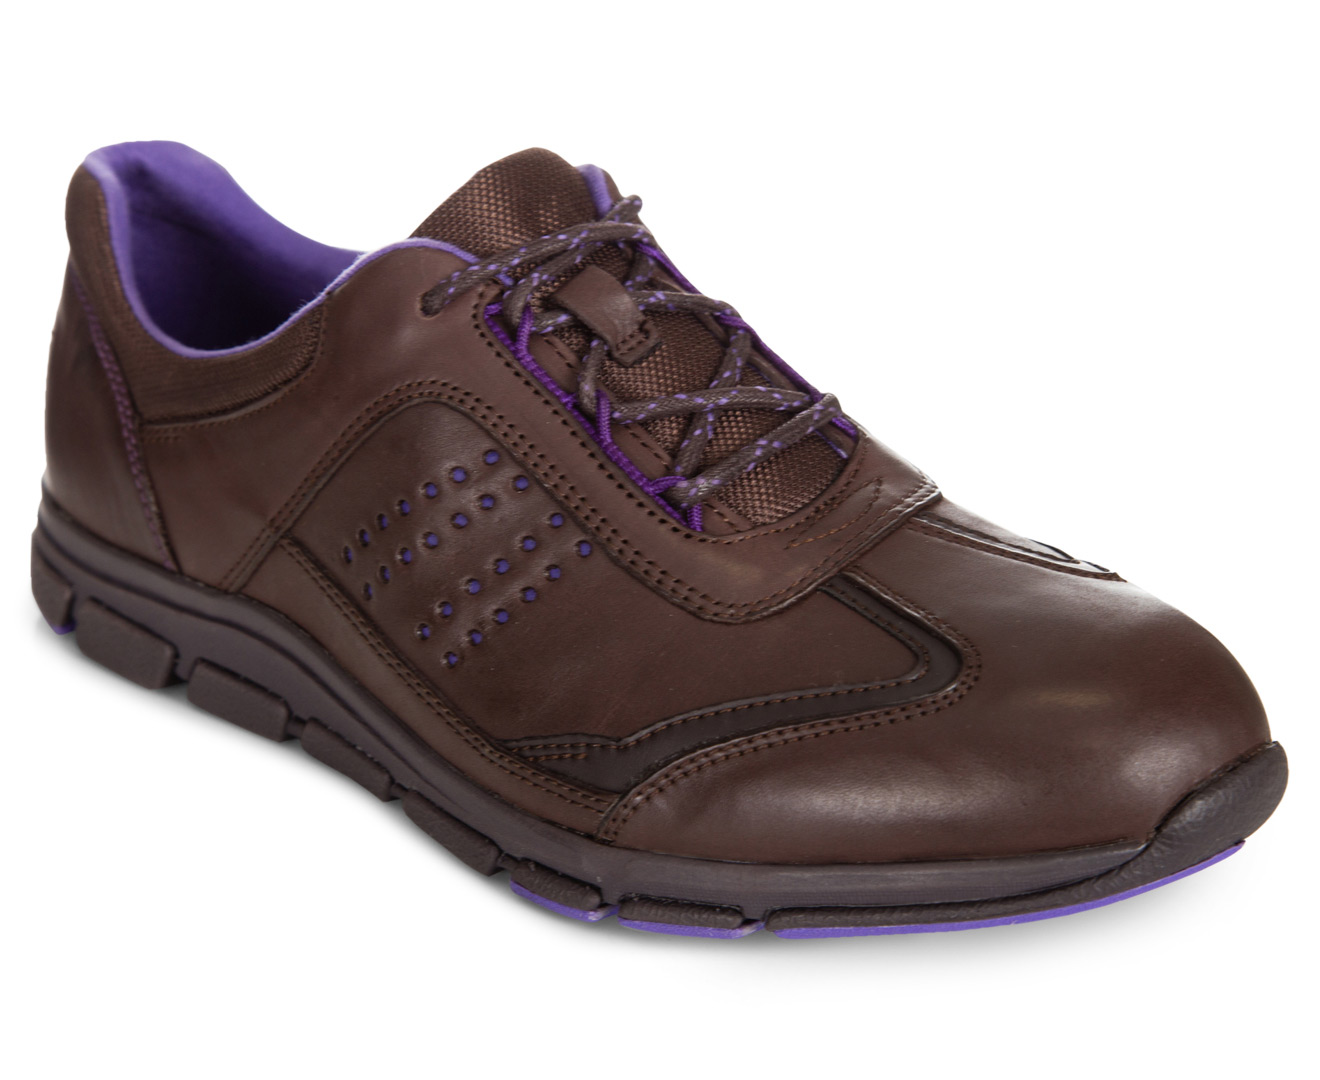 Rockport Womens Sneaker Shoe Model